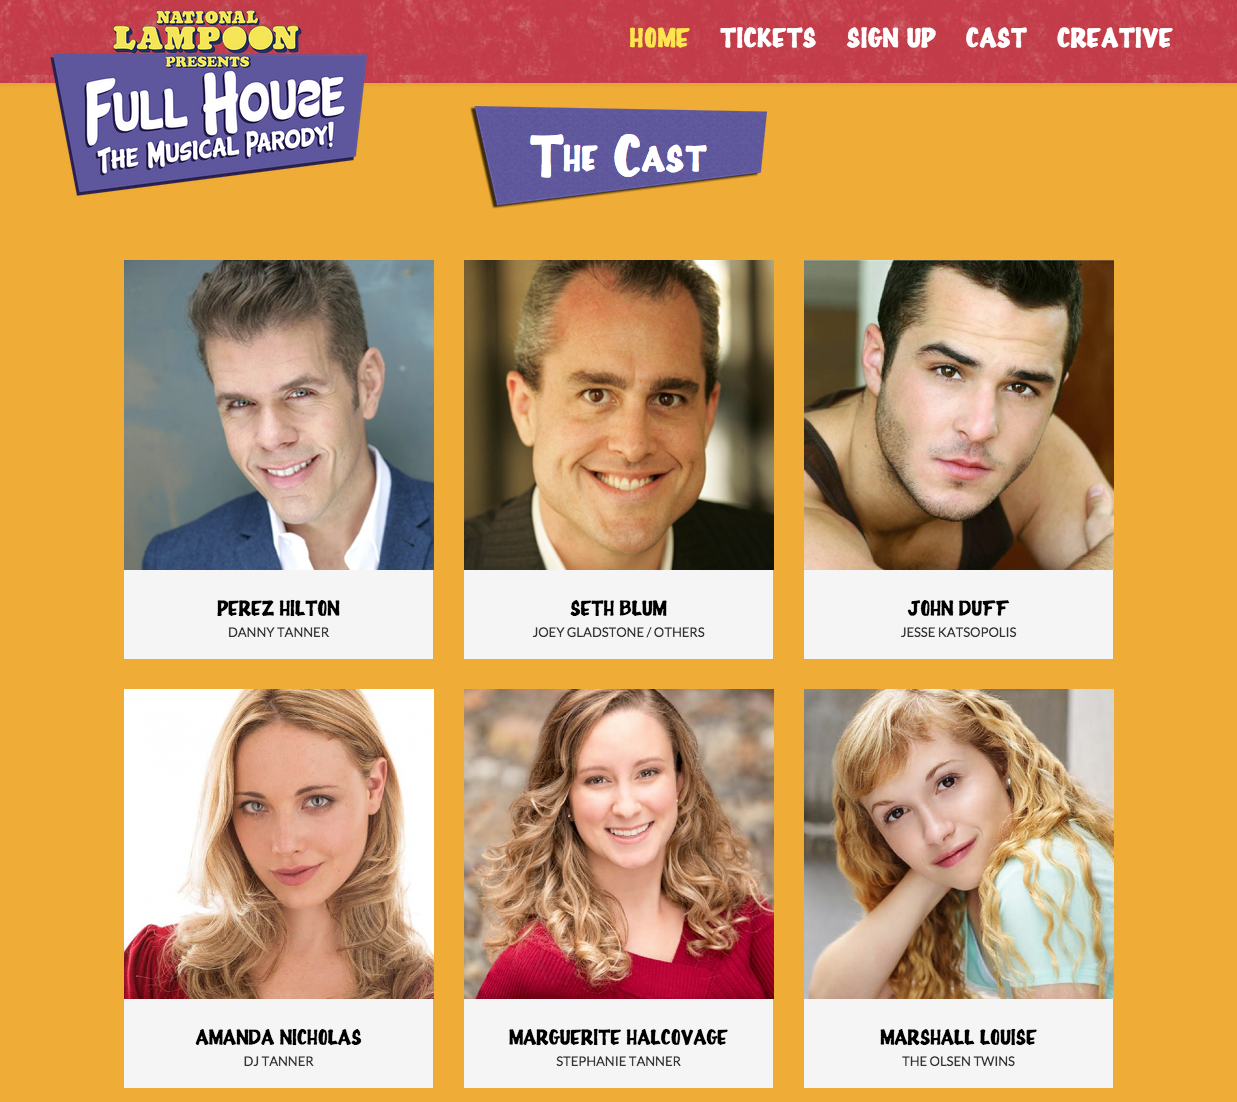 full house musical parody cast